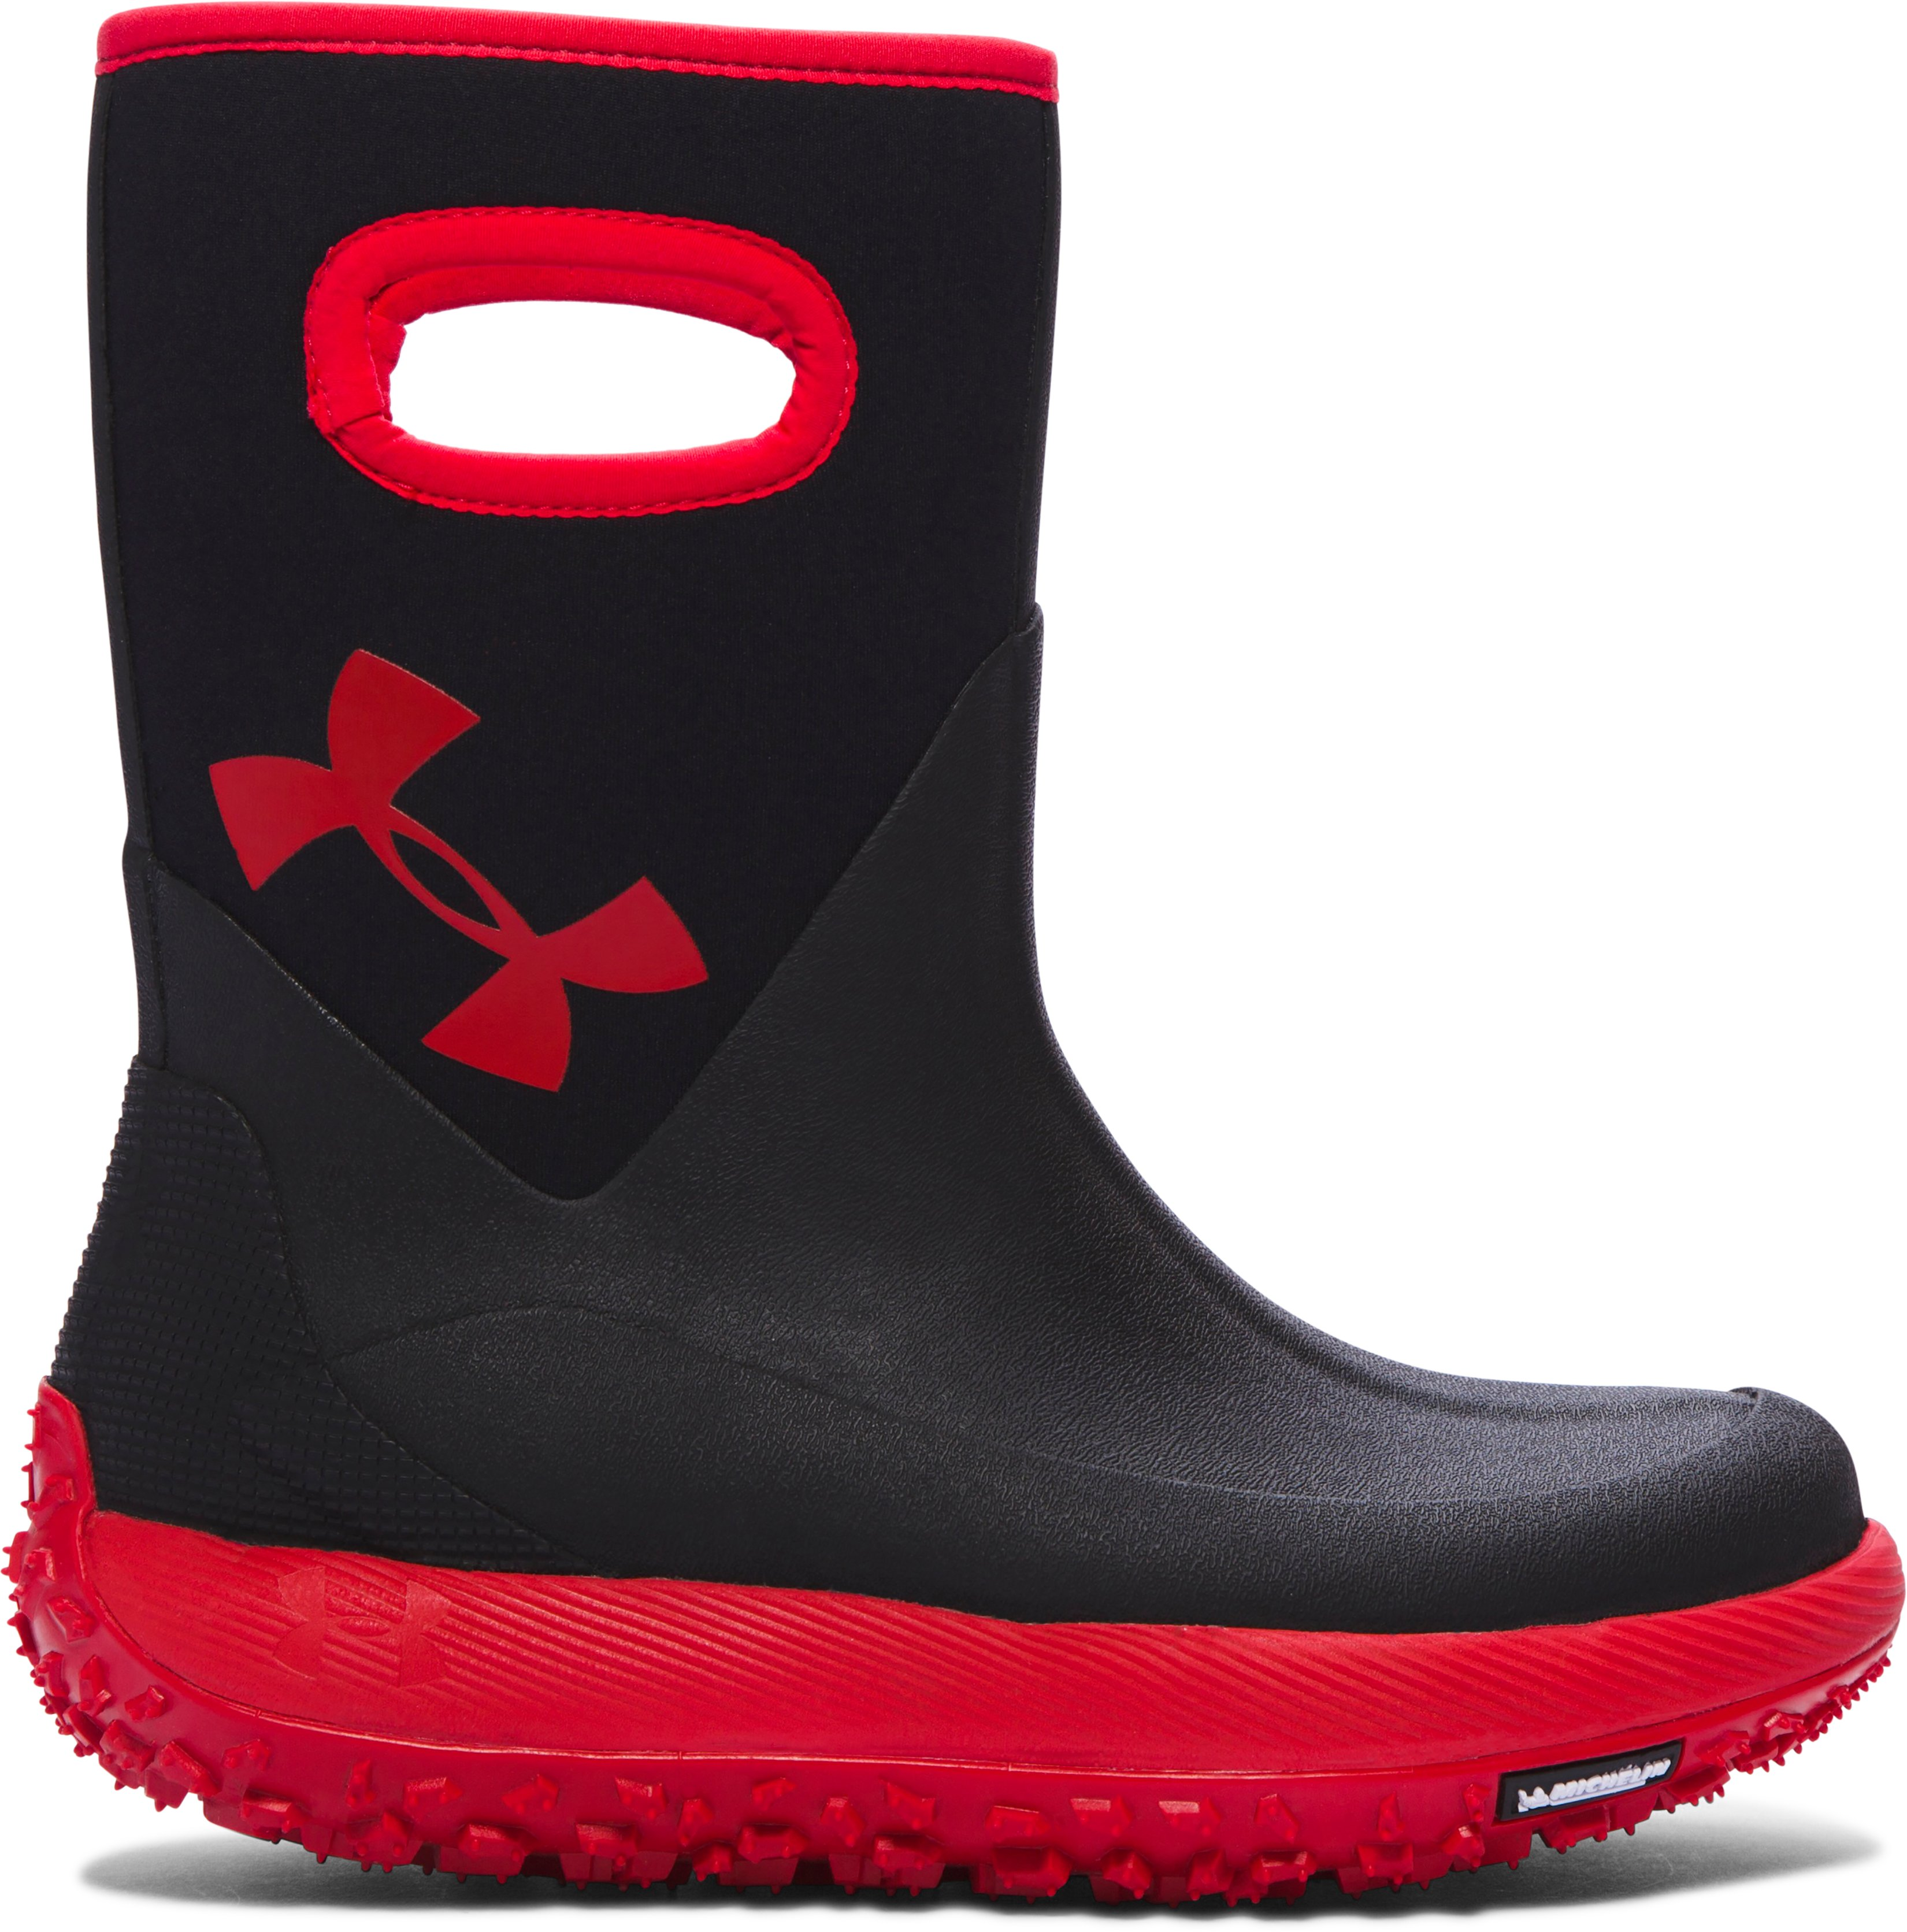 Shop Under Armour Boys' Kids (Size 8+) Footwear FREE SHIPPING available in US.